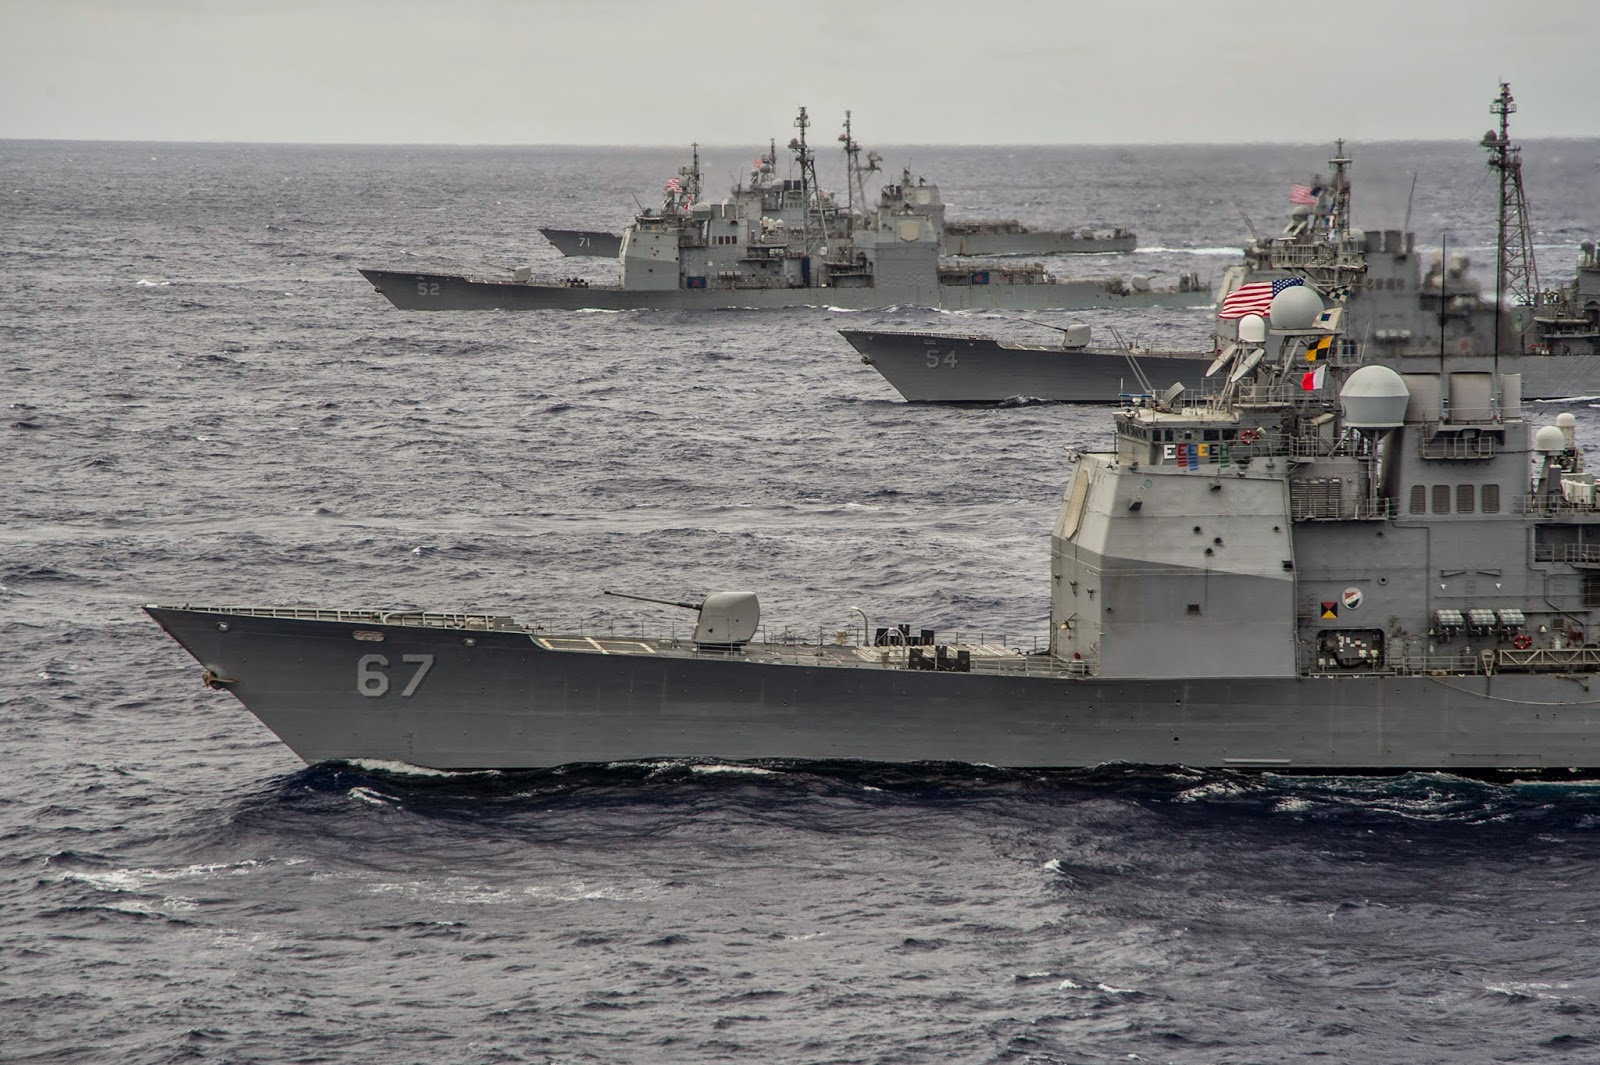 PACIFIC OCEAN (Sept. 23, 2014) The Ticonderoga-class guided-missile cruisers USS Shiloh (CG 67), foreground, USS Antietam (CG 54), USS Bunker Hill (CG 52), and USS Cape St. George (CG 71) from the George Washington and Carl Vinson Carrier Strike Groups transit in formation at the conclusion of Valiant Shield 2014. The U.S.-only exercise integrates Navy, Air Force, Army, and Marine Corps assets. (U.S. Navy photo by Mass Communication Specialist 1st Class Trevor Welsh/Released) --Click to big-up